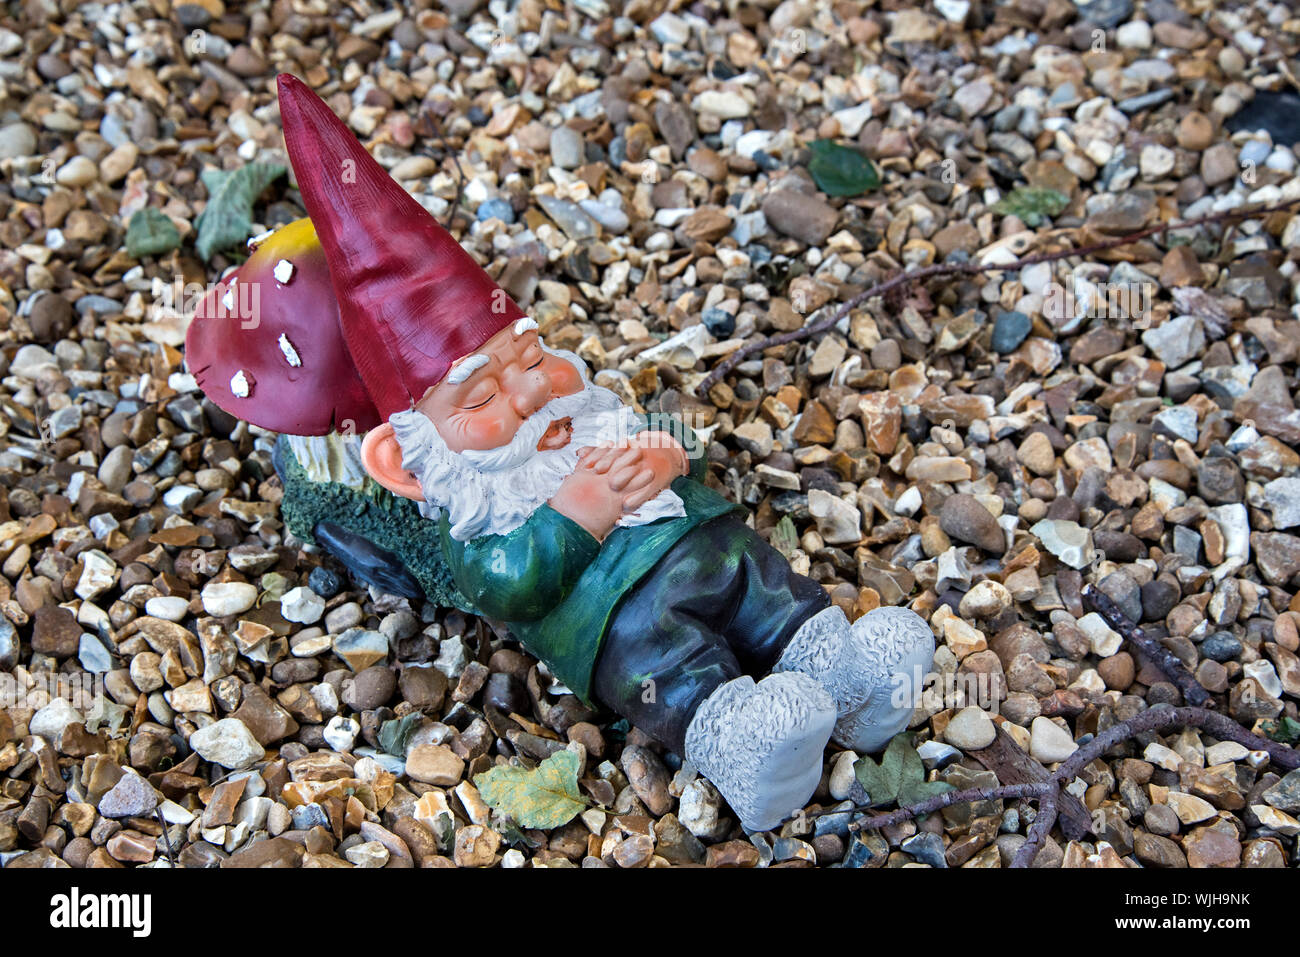 Garden gnome sleeping with his head resting on a toadstool. Stock Photo